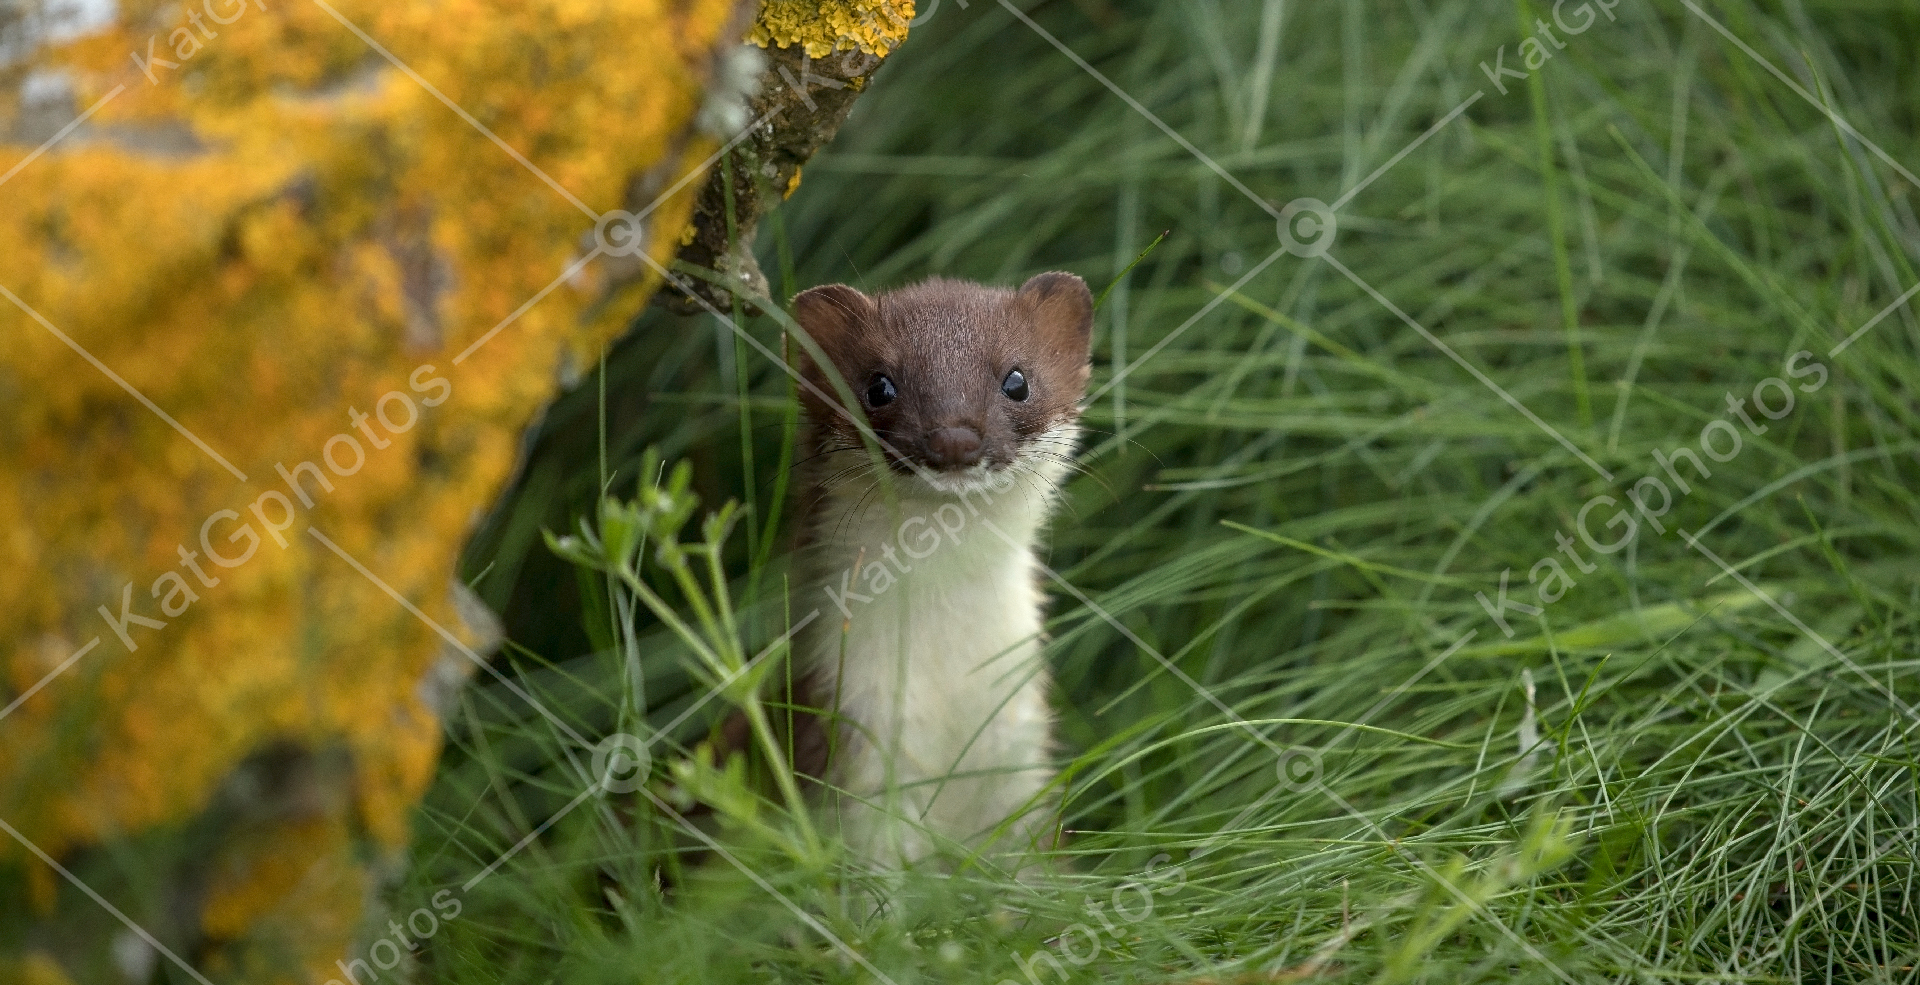 Stoat, Scotland, wild,  lindbladexp, natgeo, perfect, nature,  animal captures, beautiful, wildlife